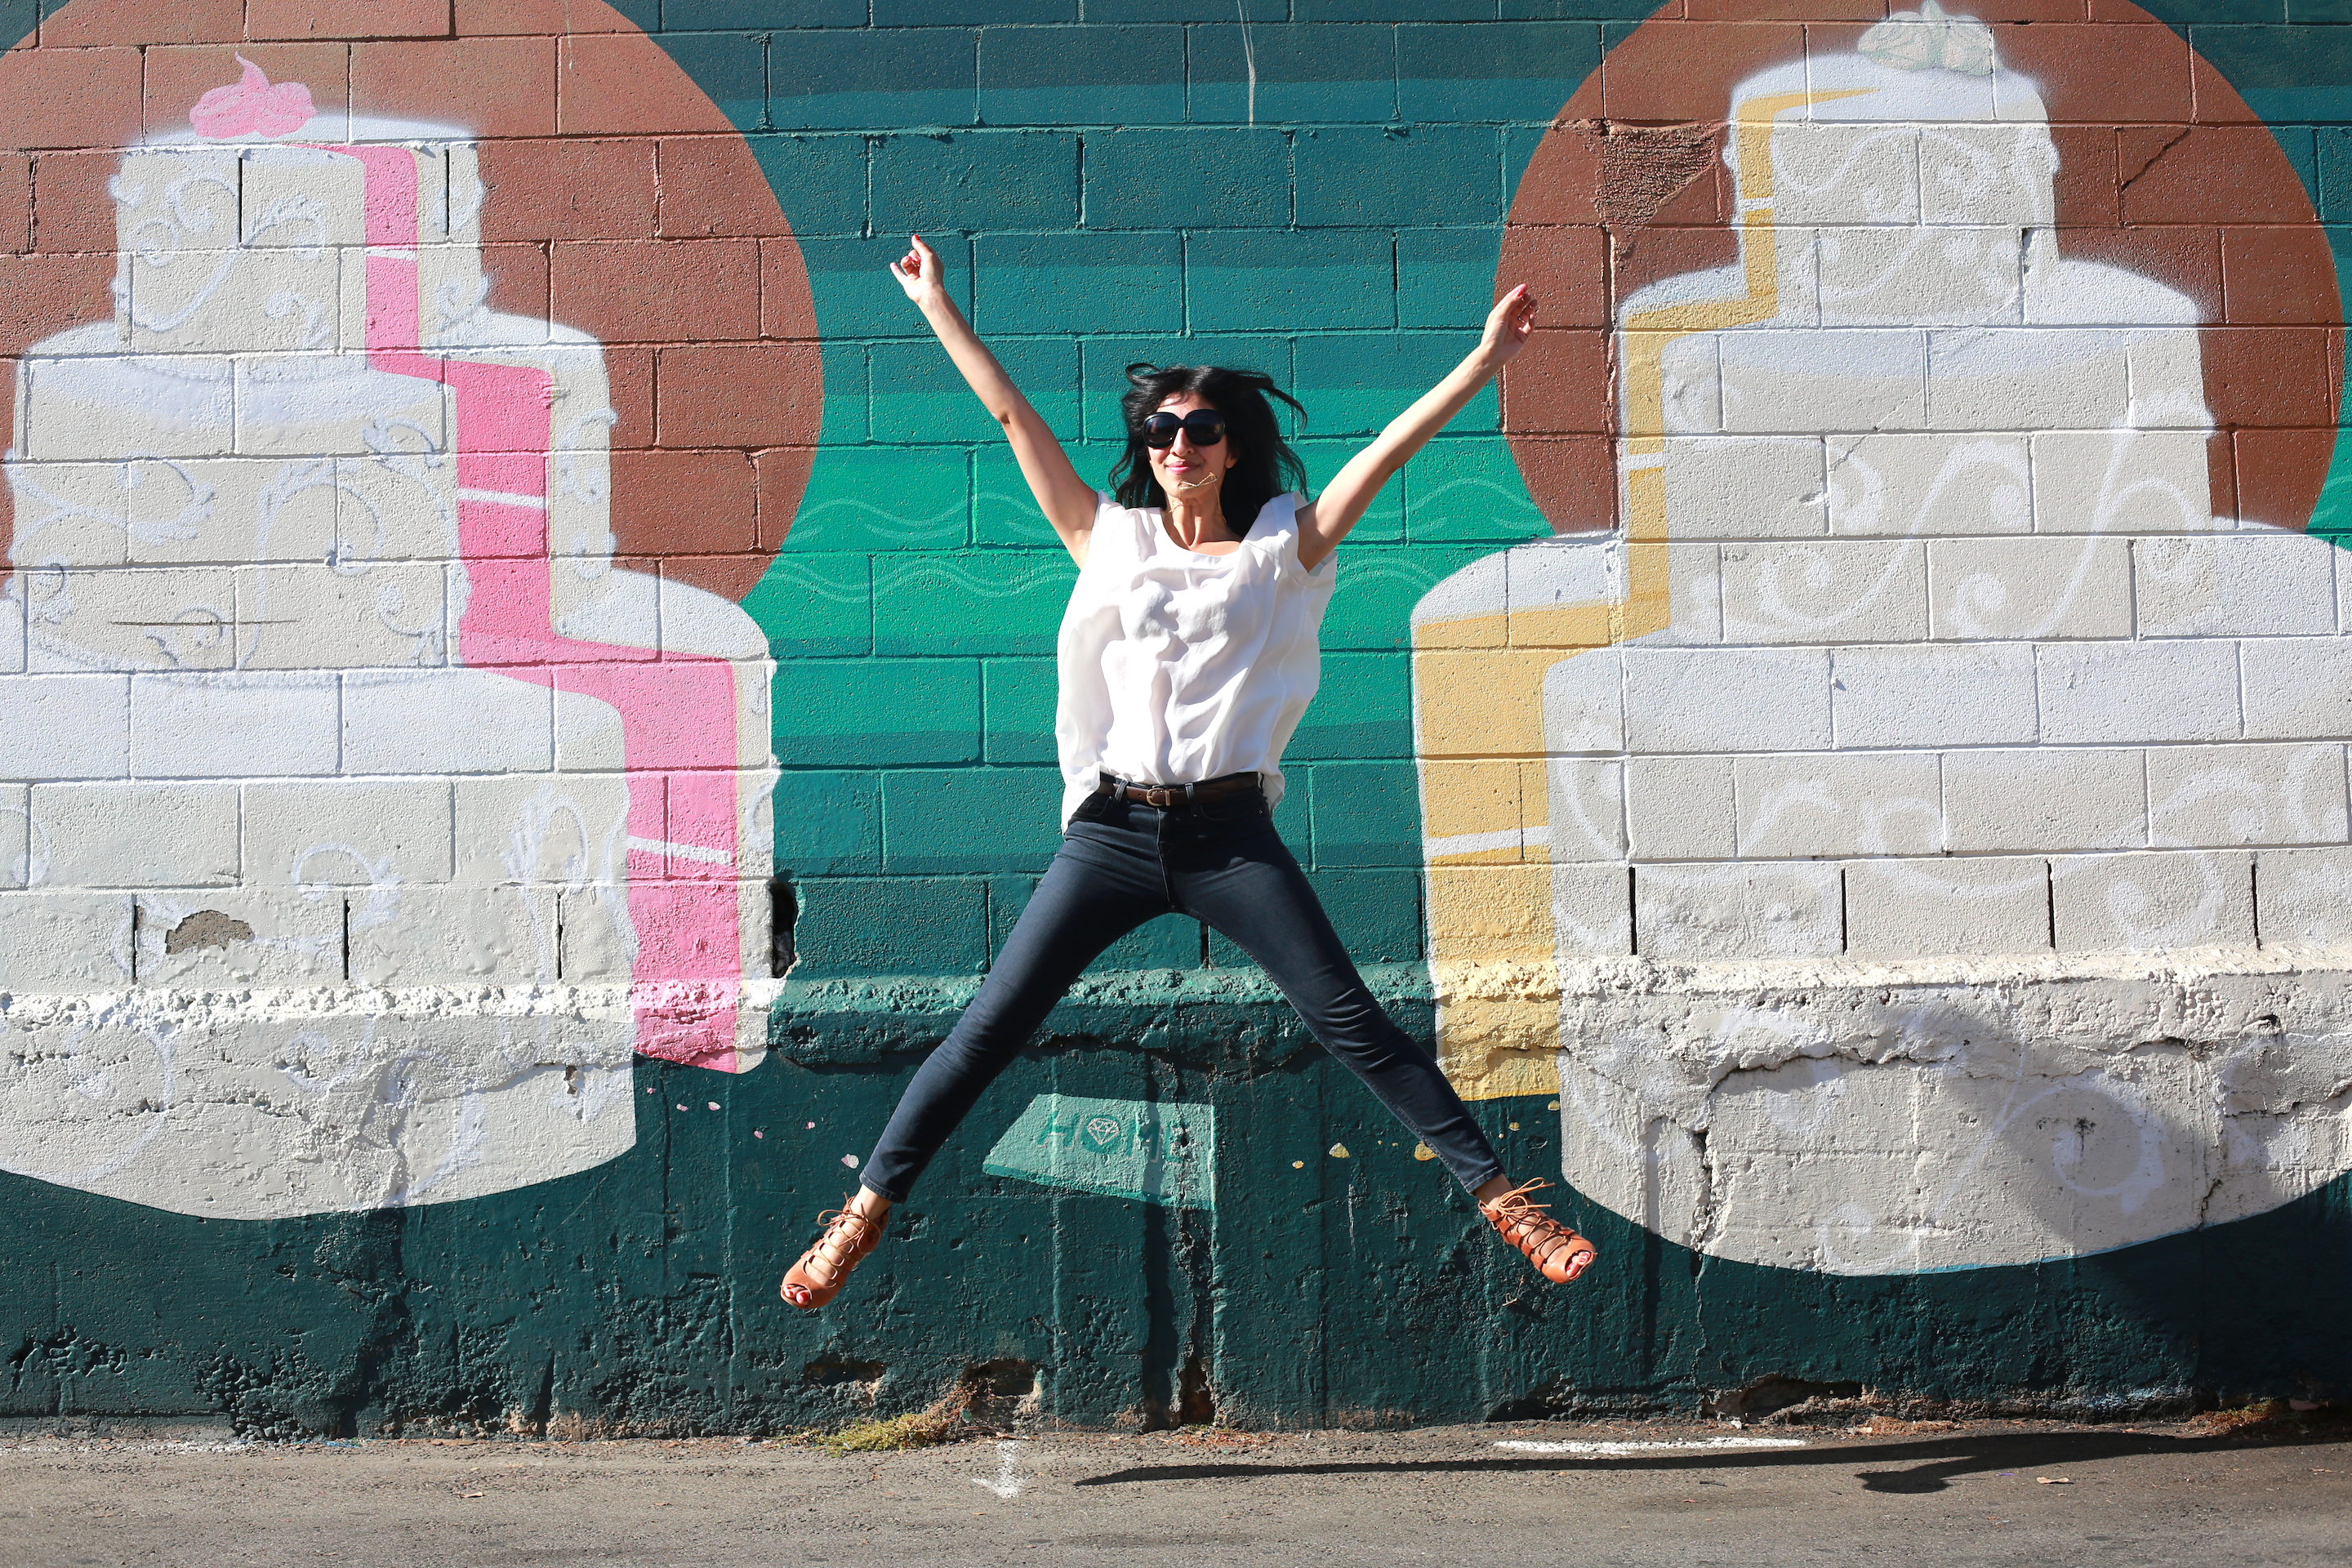 YAY! Thanks for joining me on my colorful journey through West Hollywood! Next trip: Walls of Silver Lake!